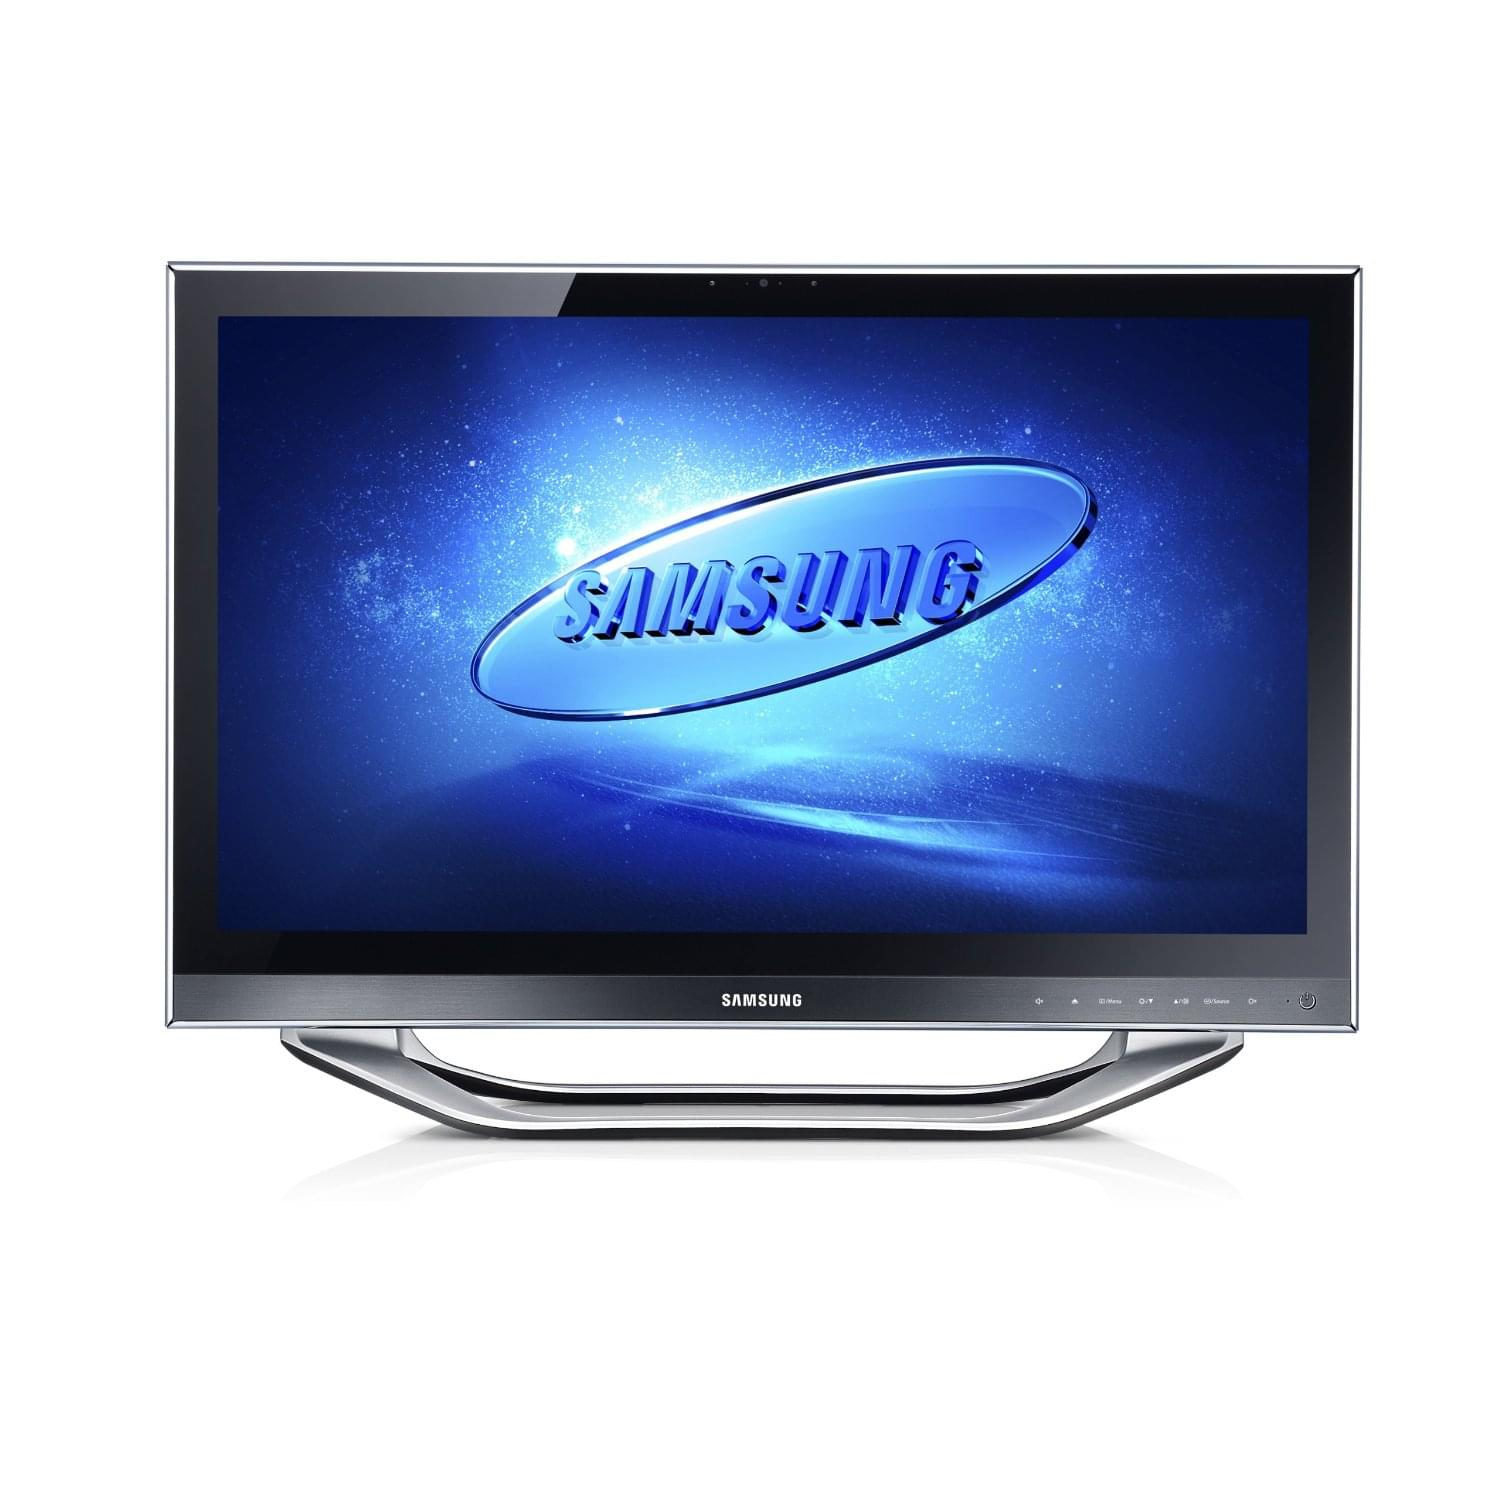 Samsung DP700A3D-S01FR (DP700A3D-S01FR) - Achat / Vente All-In-One PC sur Cybertek.fr - 0